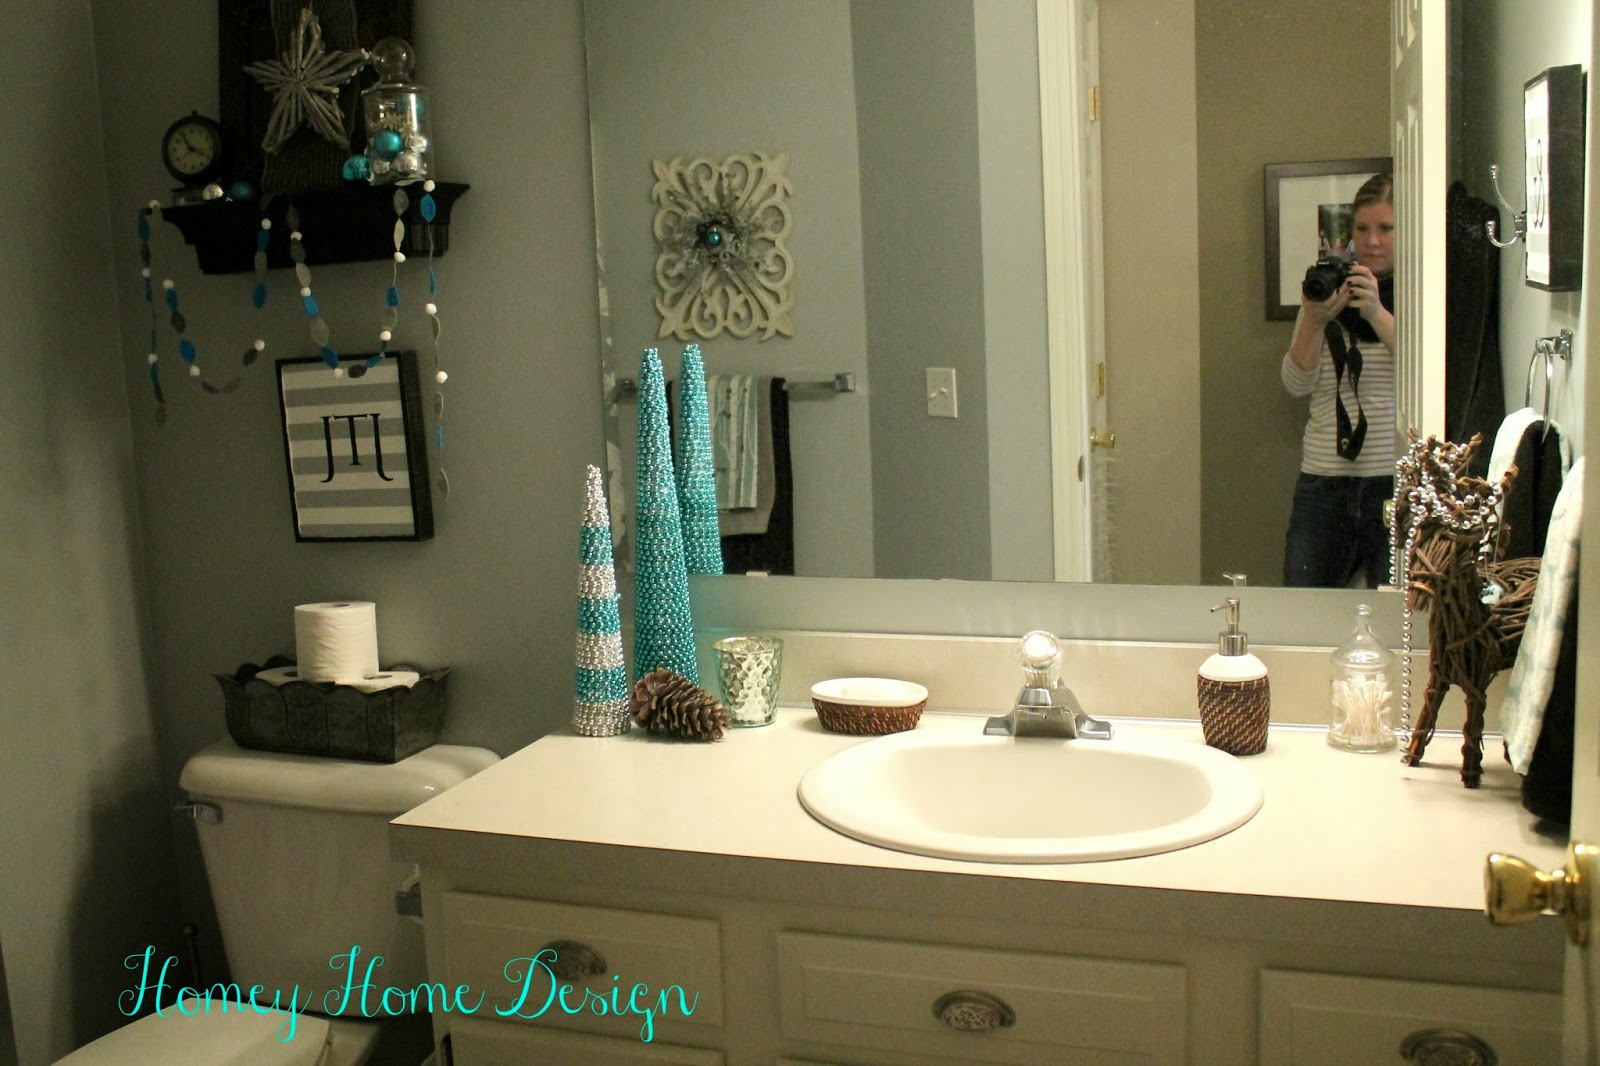 Homey home design bathroom christmas ideas for Bathroom decoration items